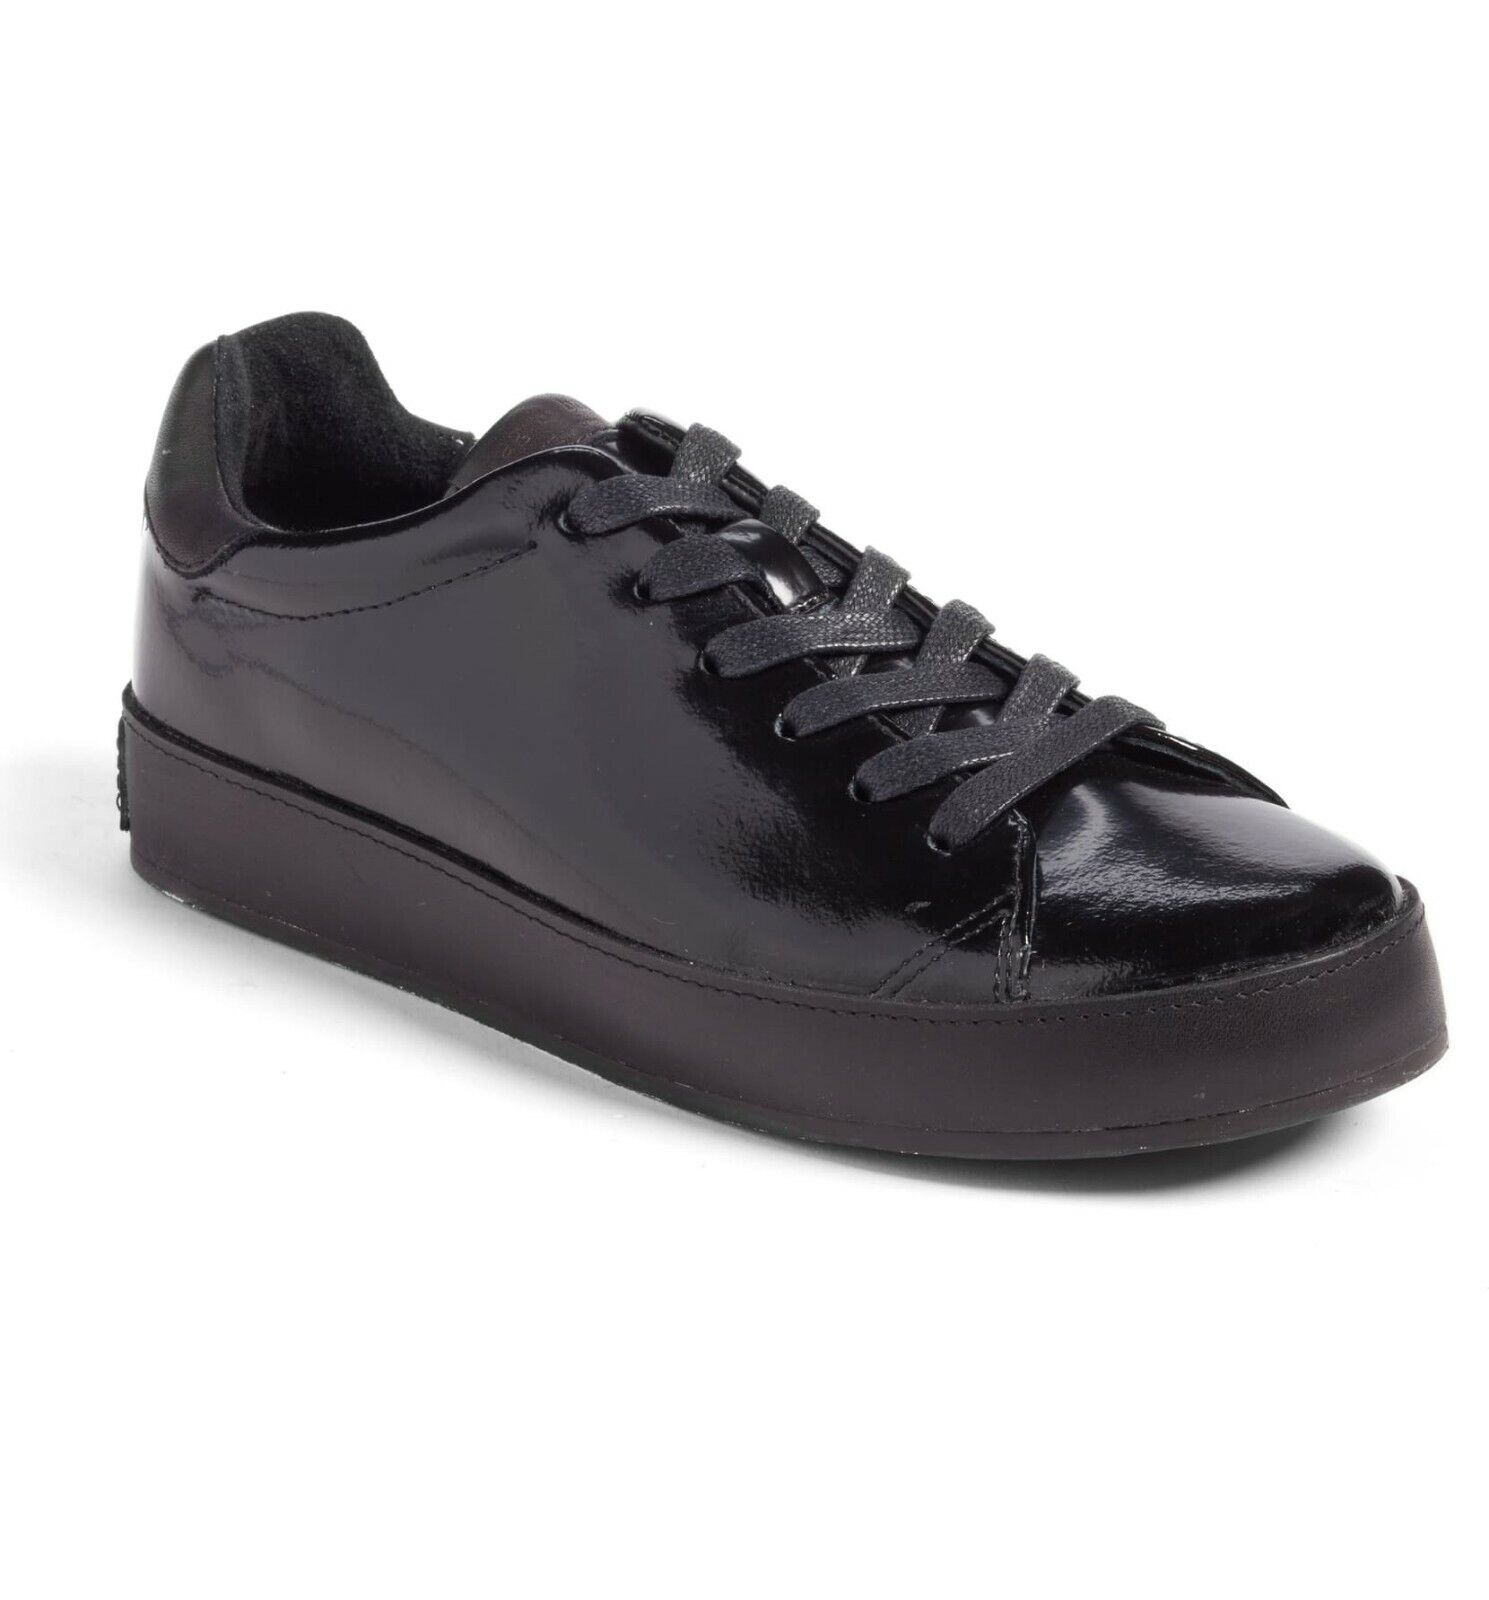 Rag & Bone RB1 Low-Top Leather SNEAKER shoes Women black sz.39.5 NWOB